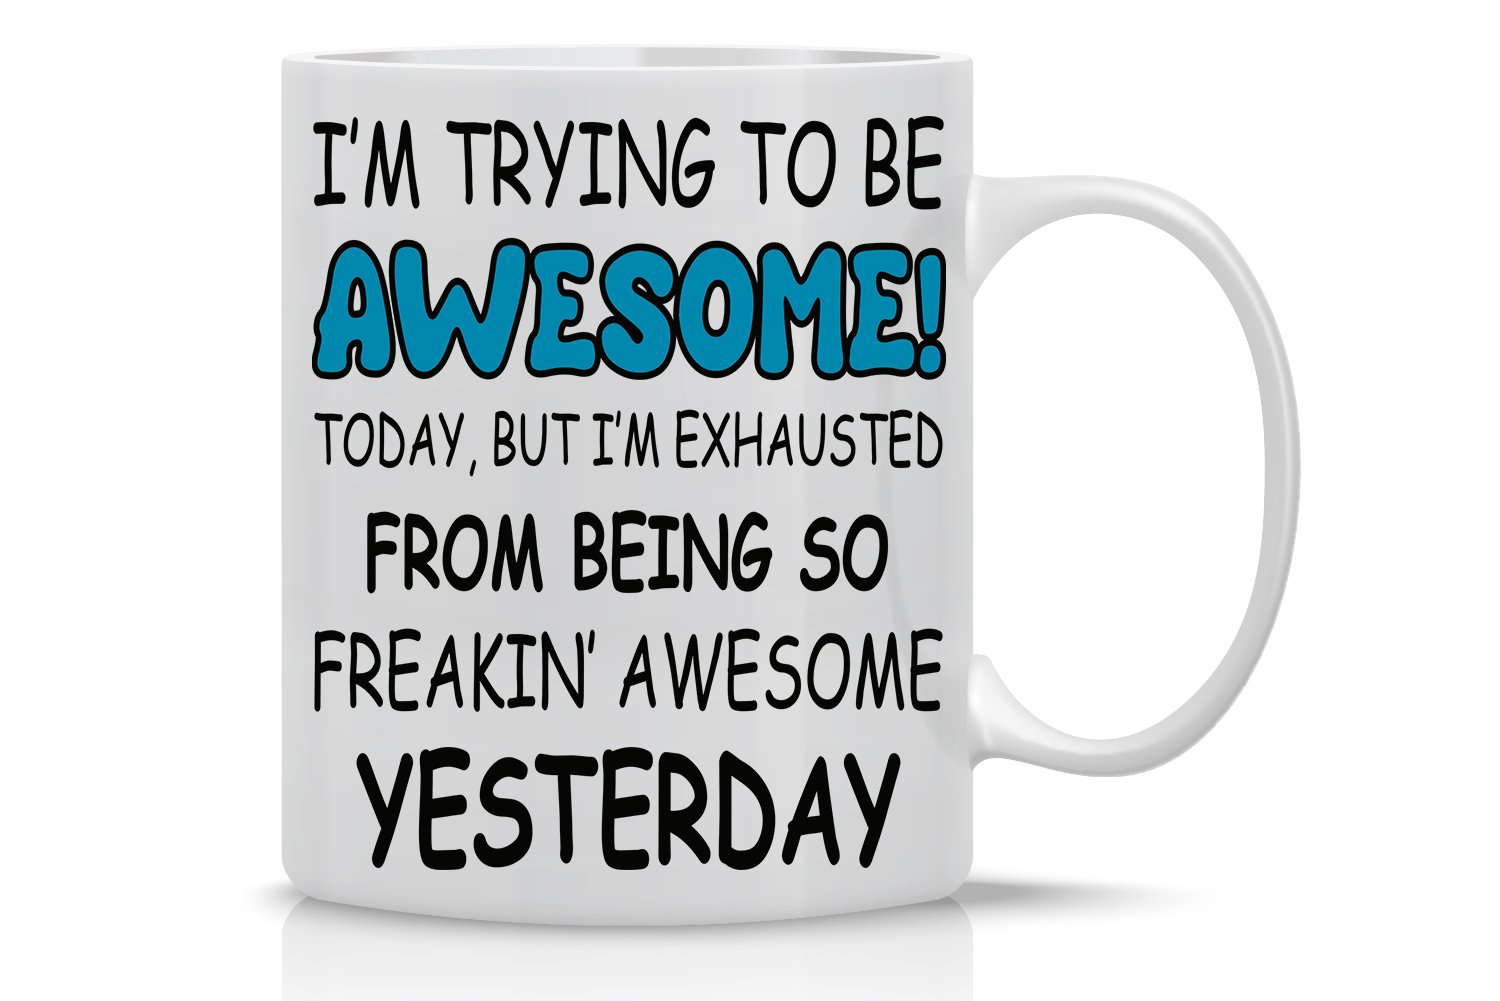 I'm Trying To Be Awesome Today But I'm Exhausted From Being So Freakin Awesome Yesterday 11OZ Coffee Mug image